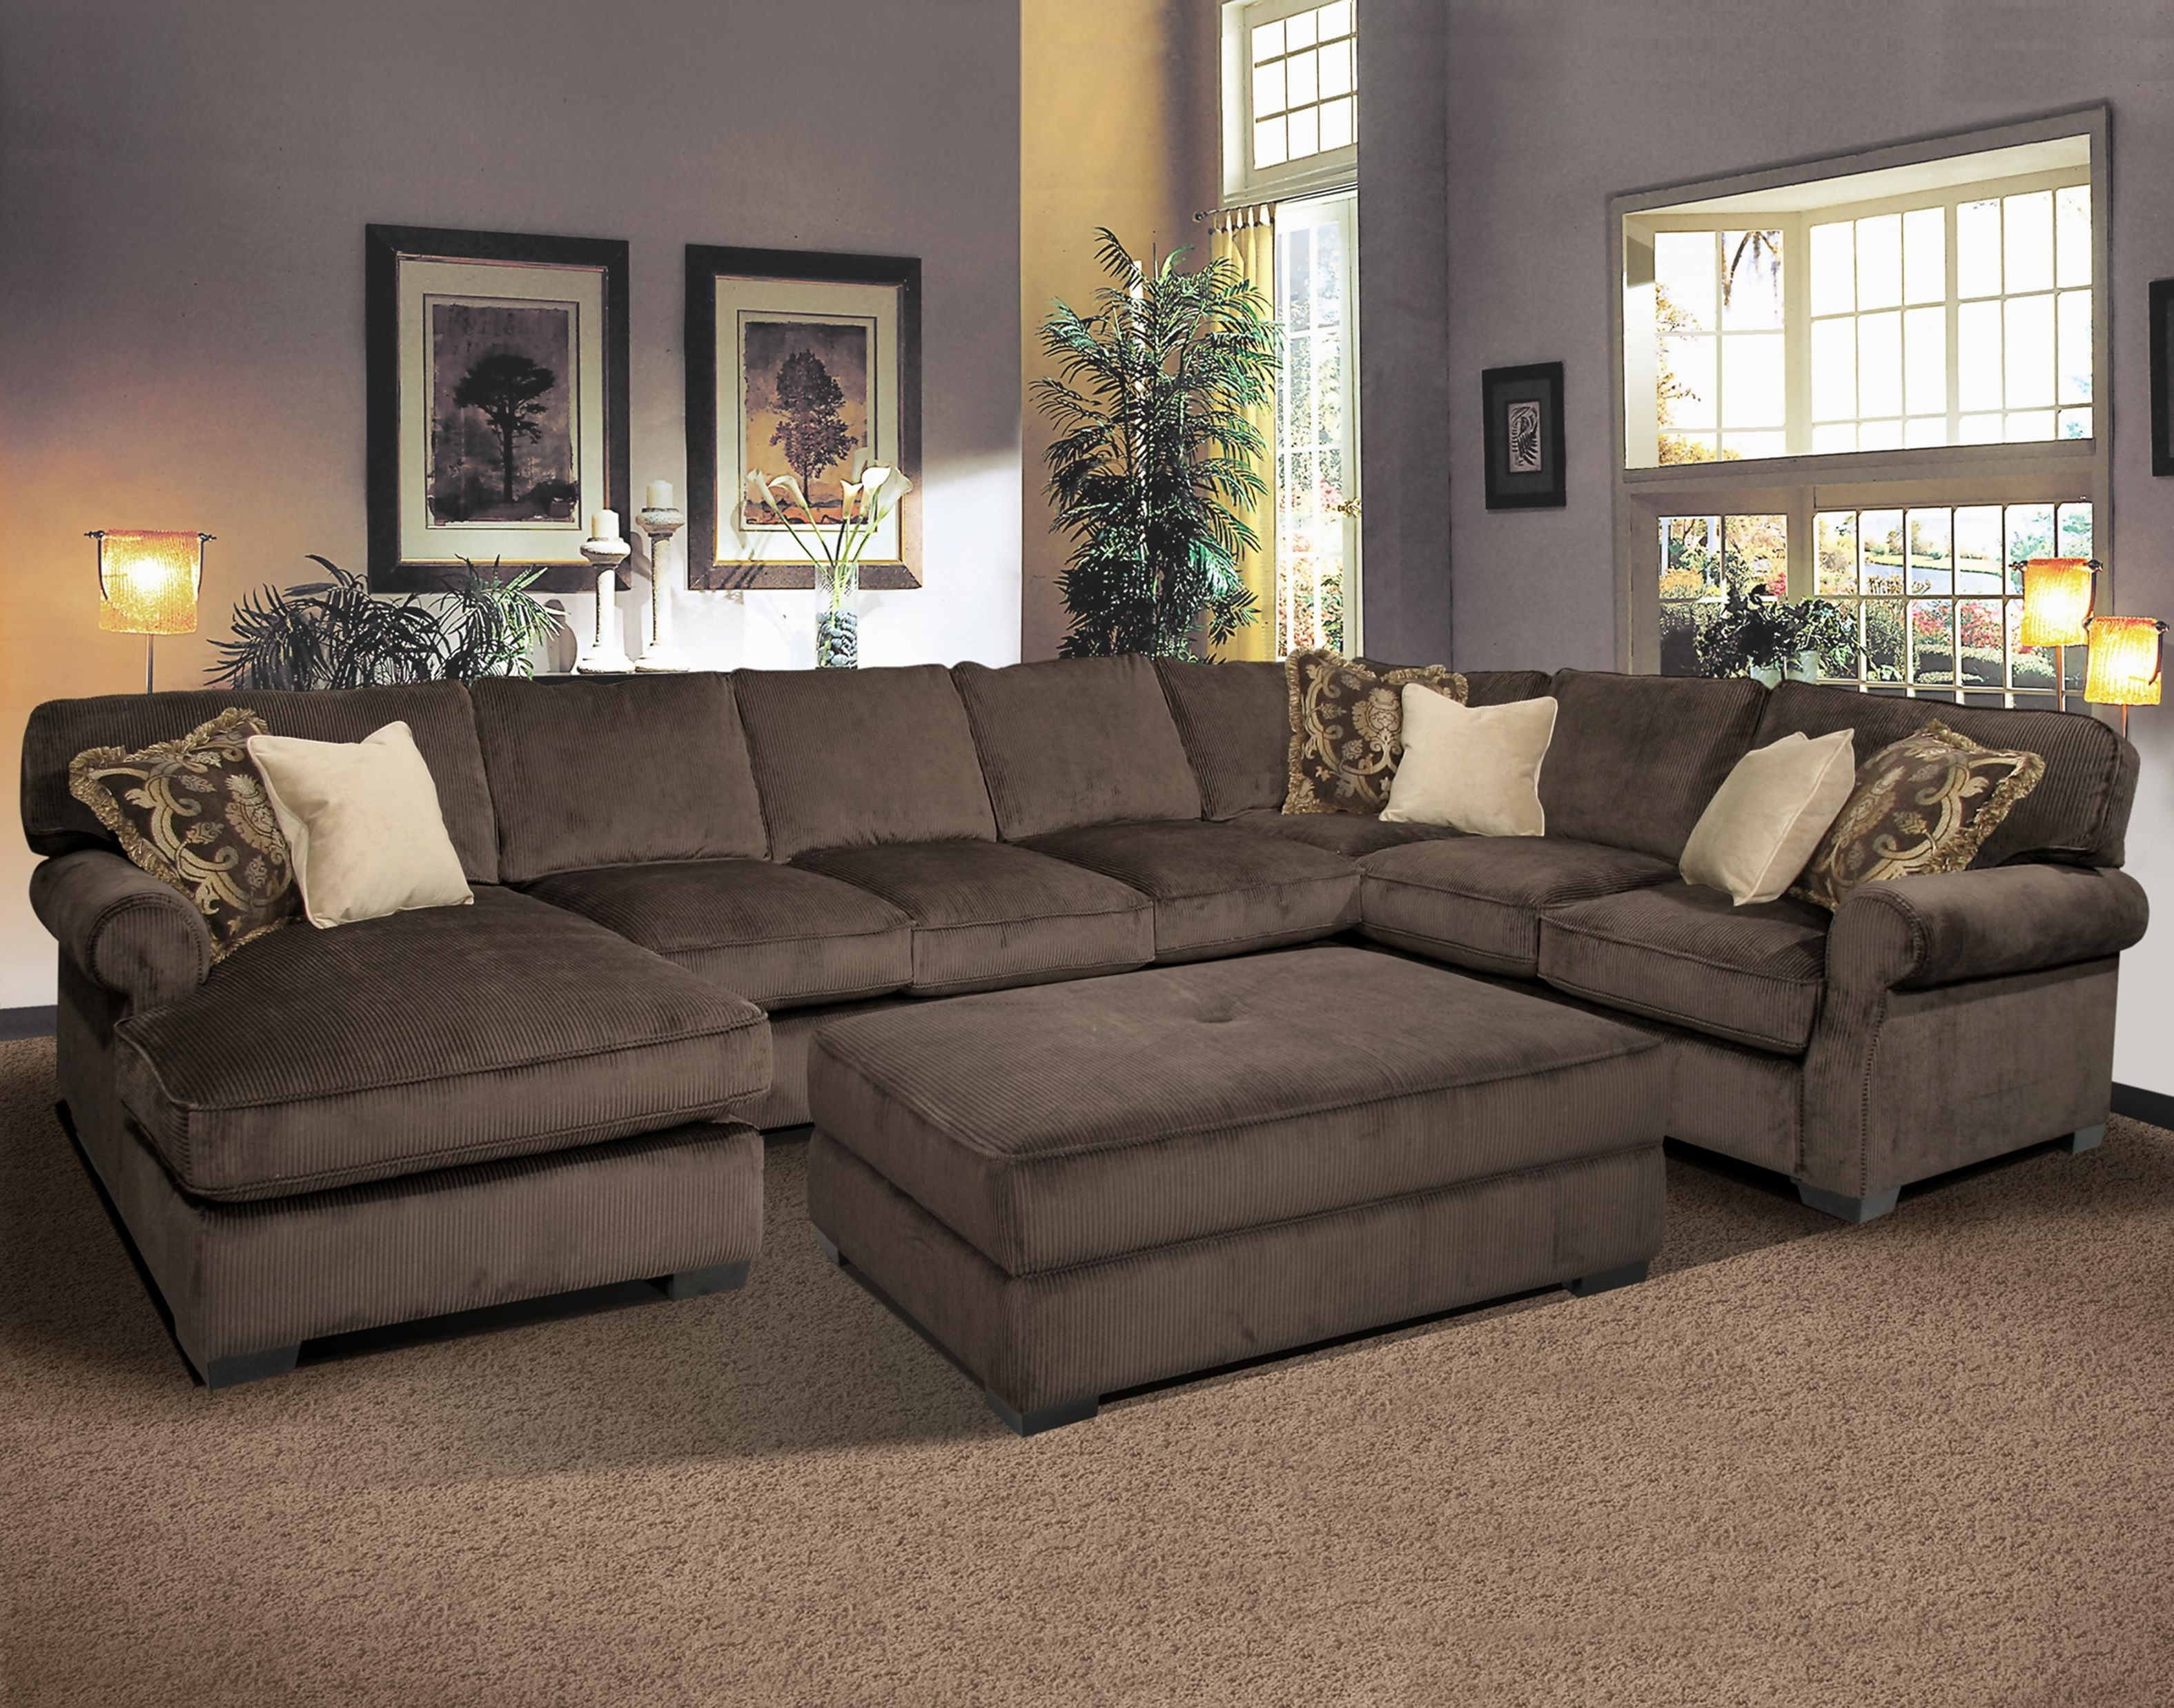 Well Known Big And Comfy Grand Island Large, 7 Seat Sectional Sofa With Right With Regard To Long Sectional Sofas With Chaise (View 18 of 20)